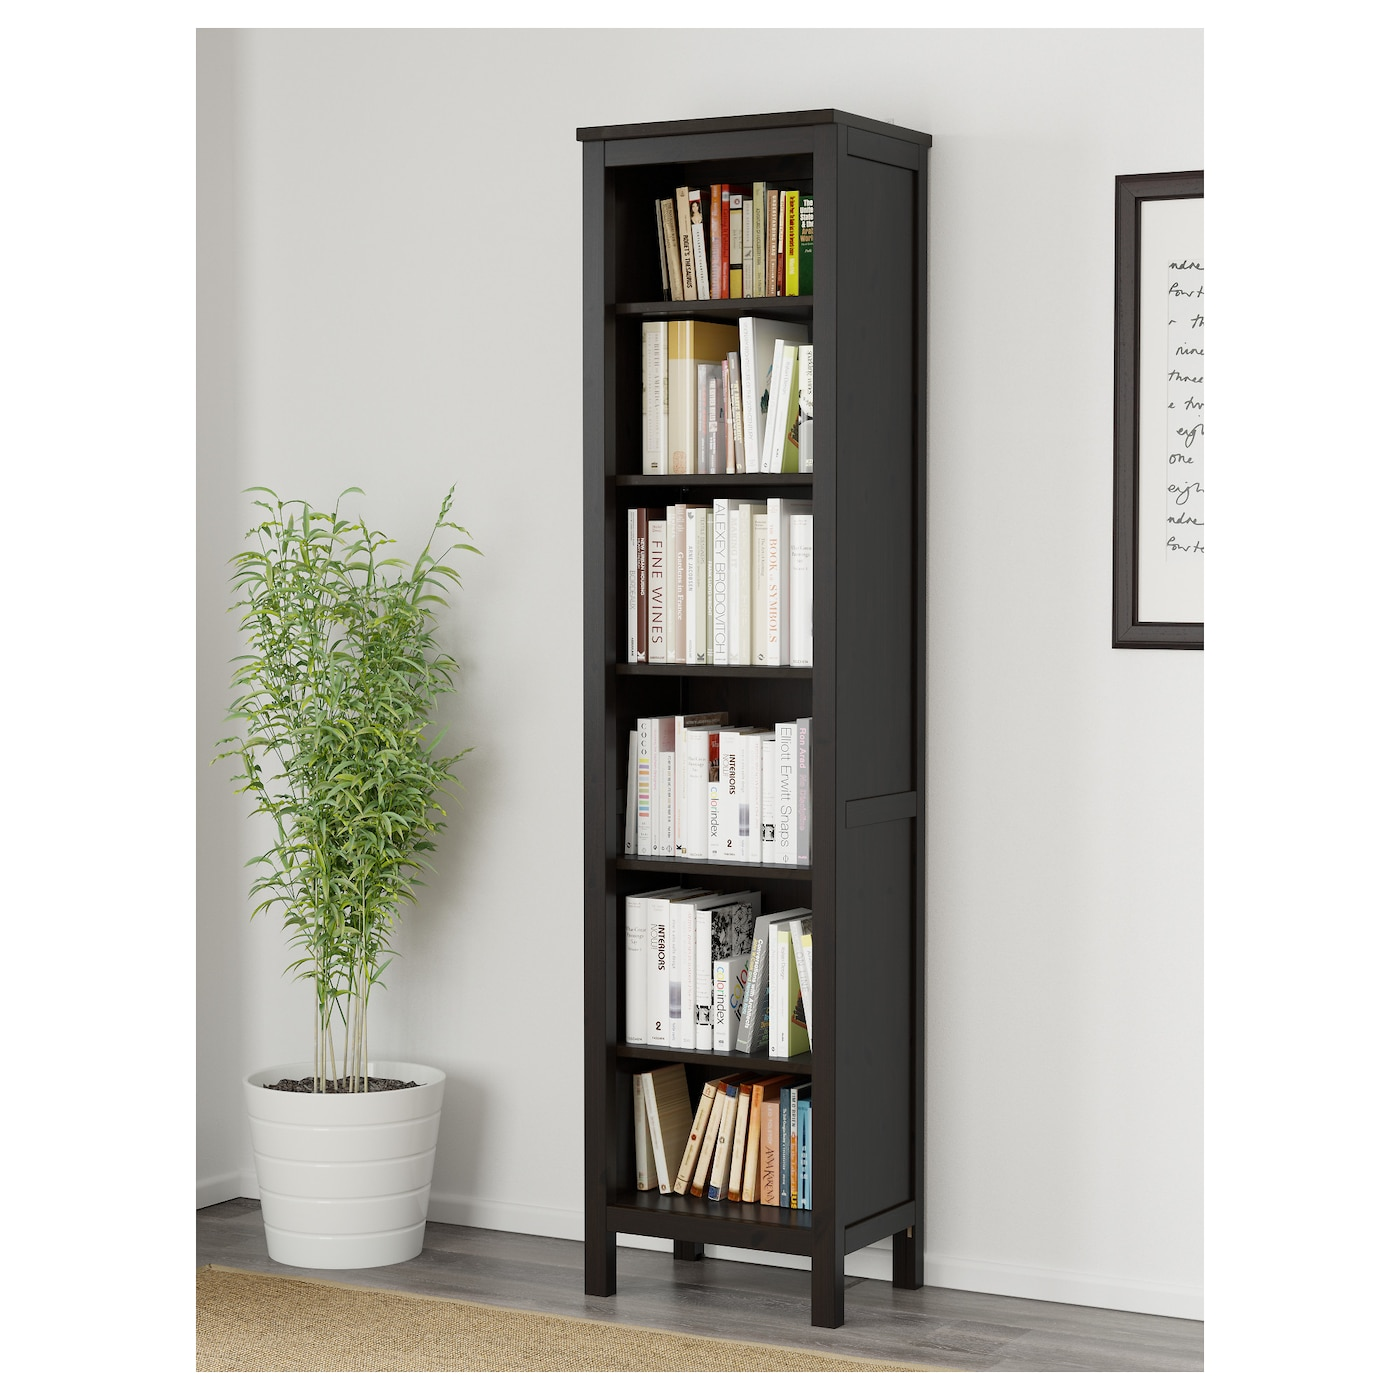 hemnes biblioth que brun noir 49x197 cm ikea. Black Bedroom Furniture Sets. Home Design Ideas